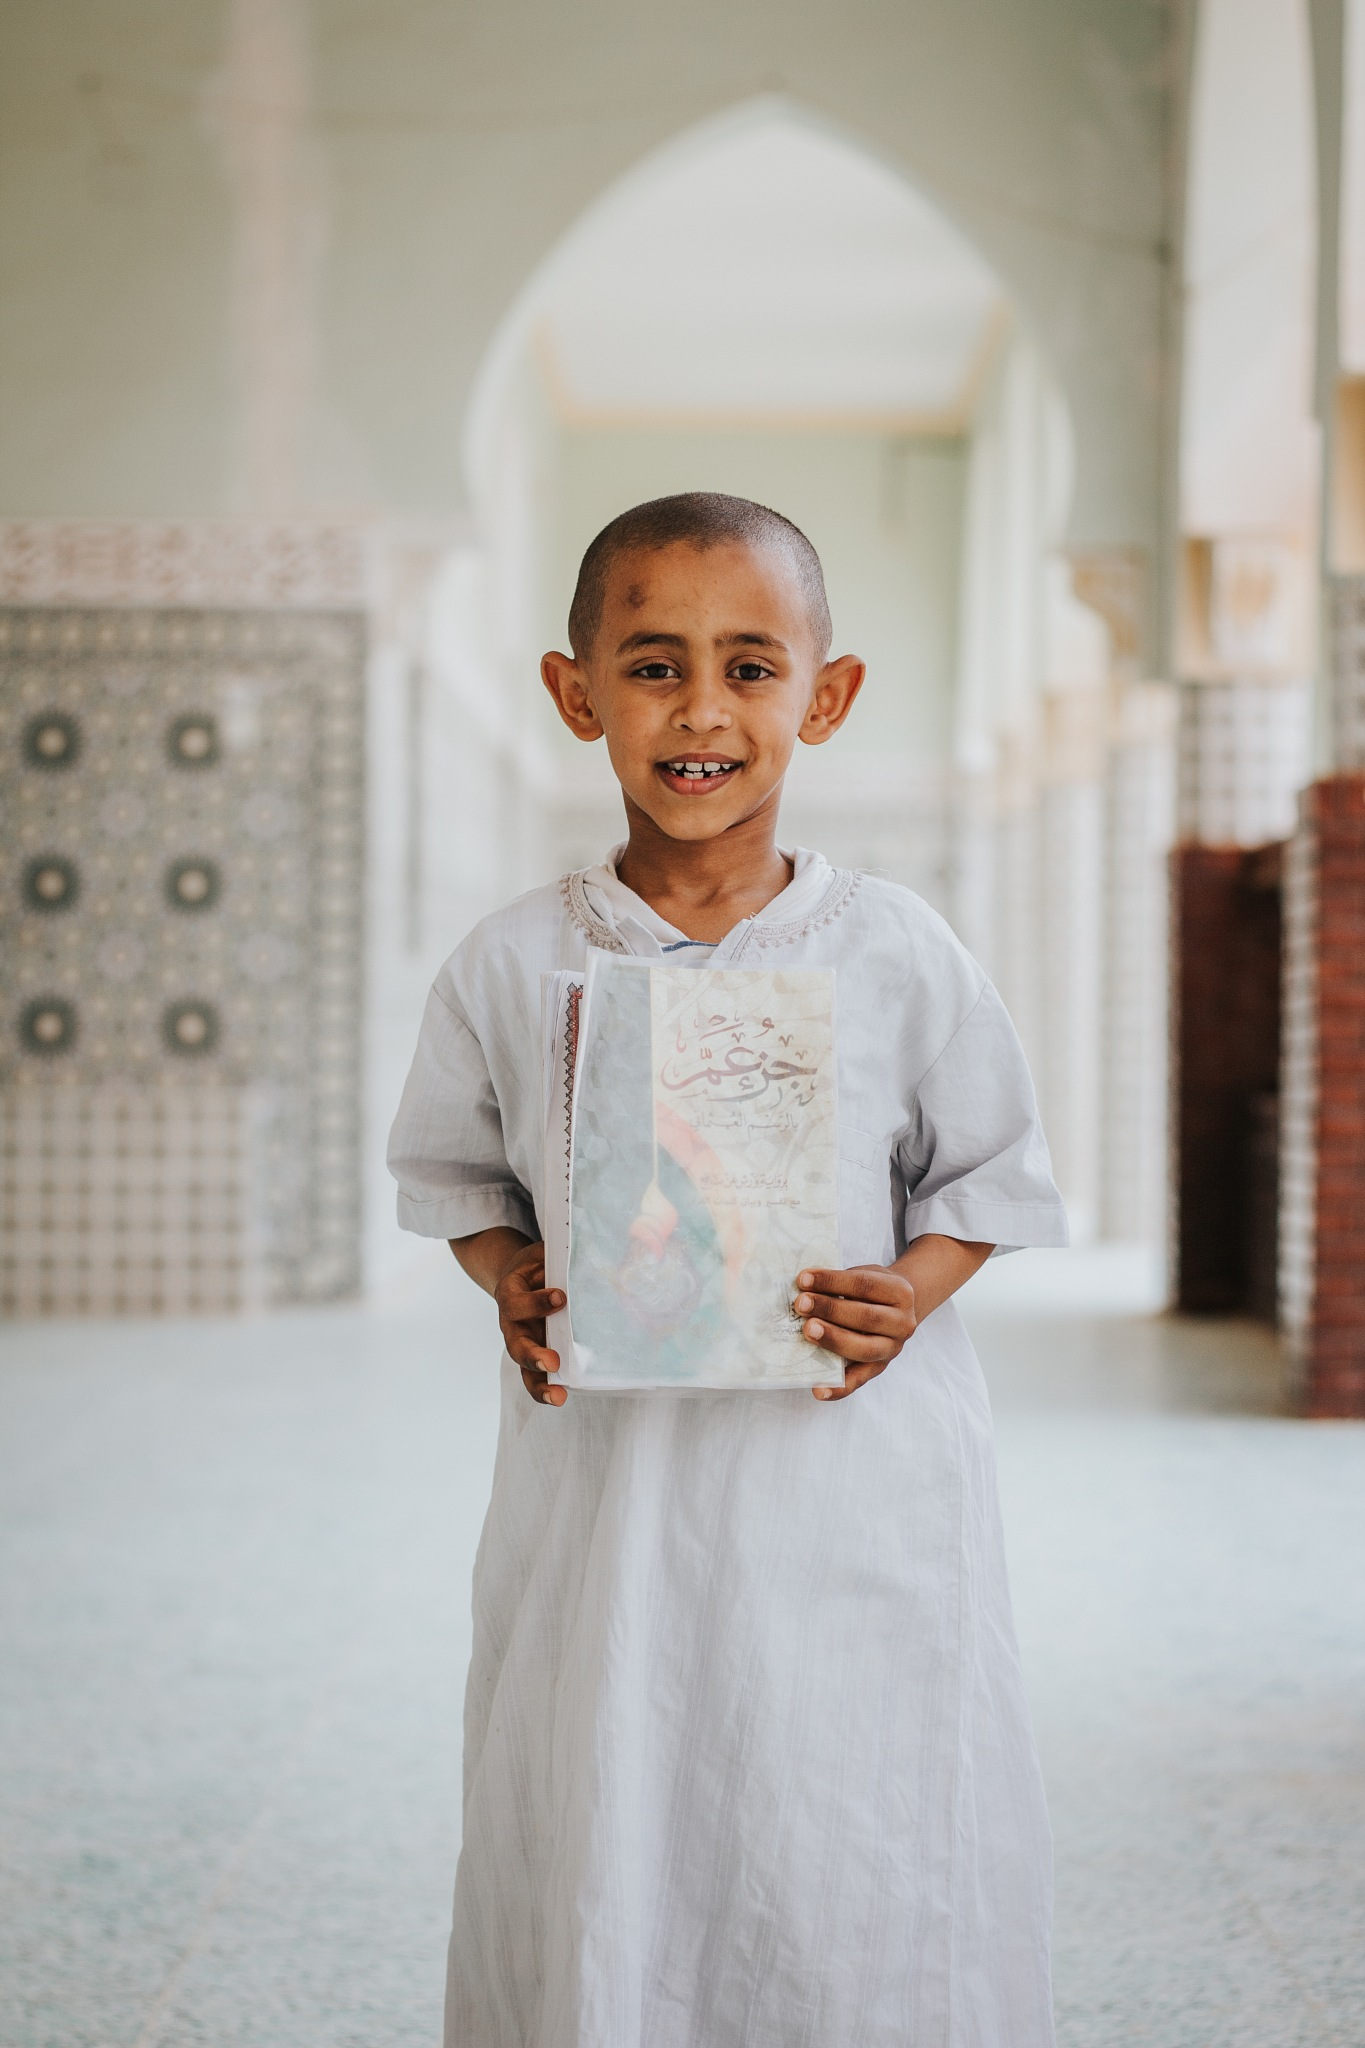 The Young Muslim Boy by Mohamed Kaddouri